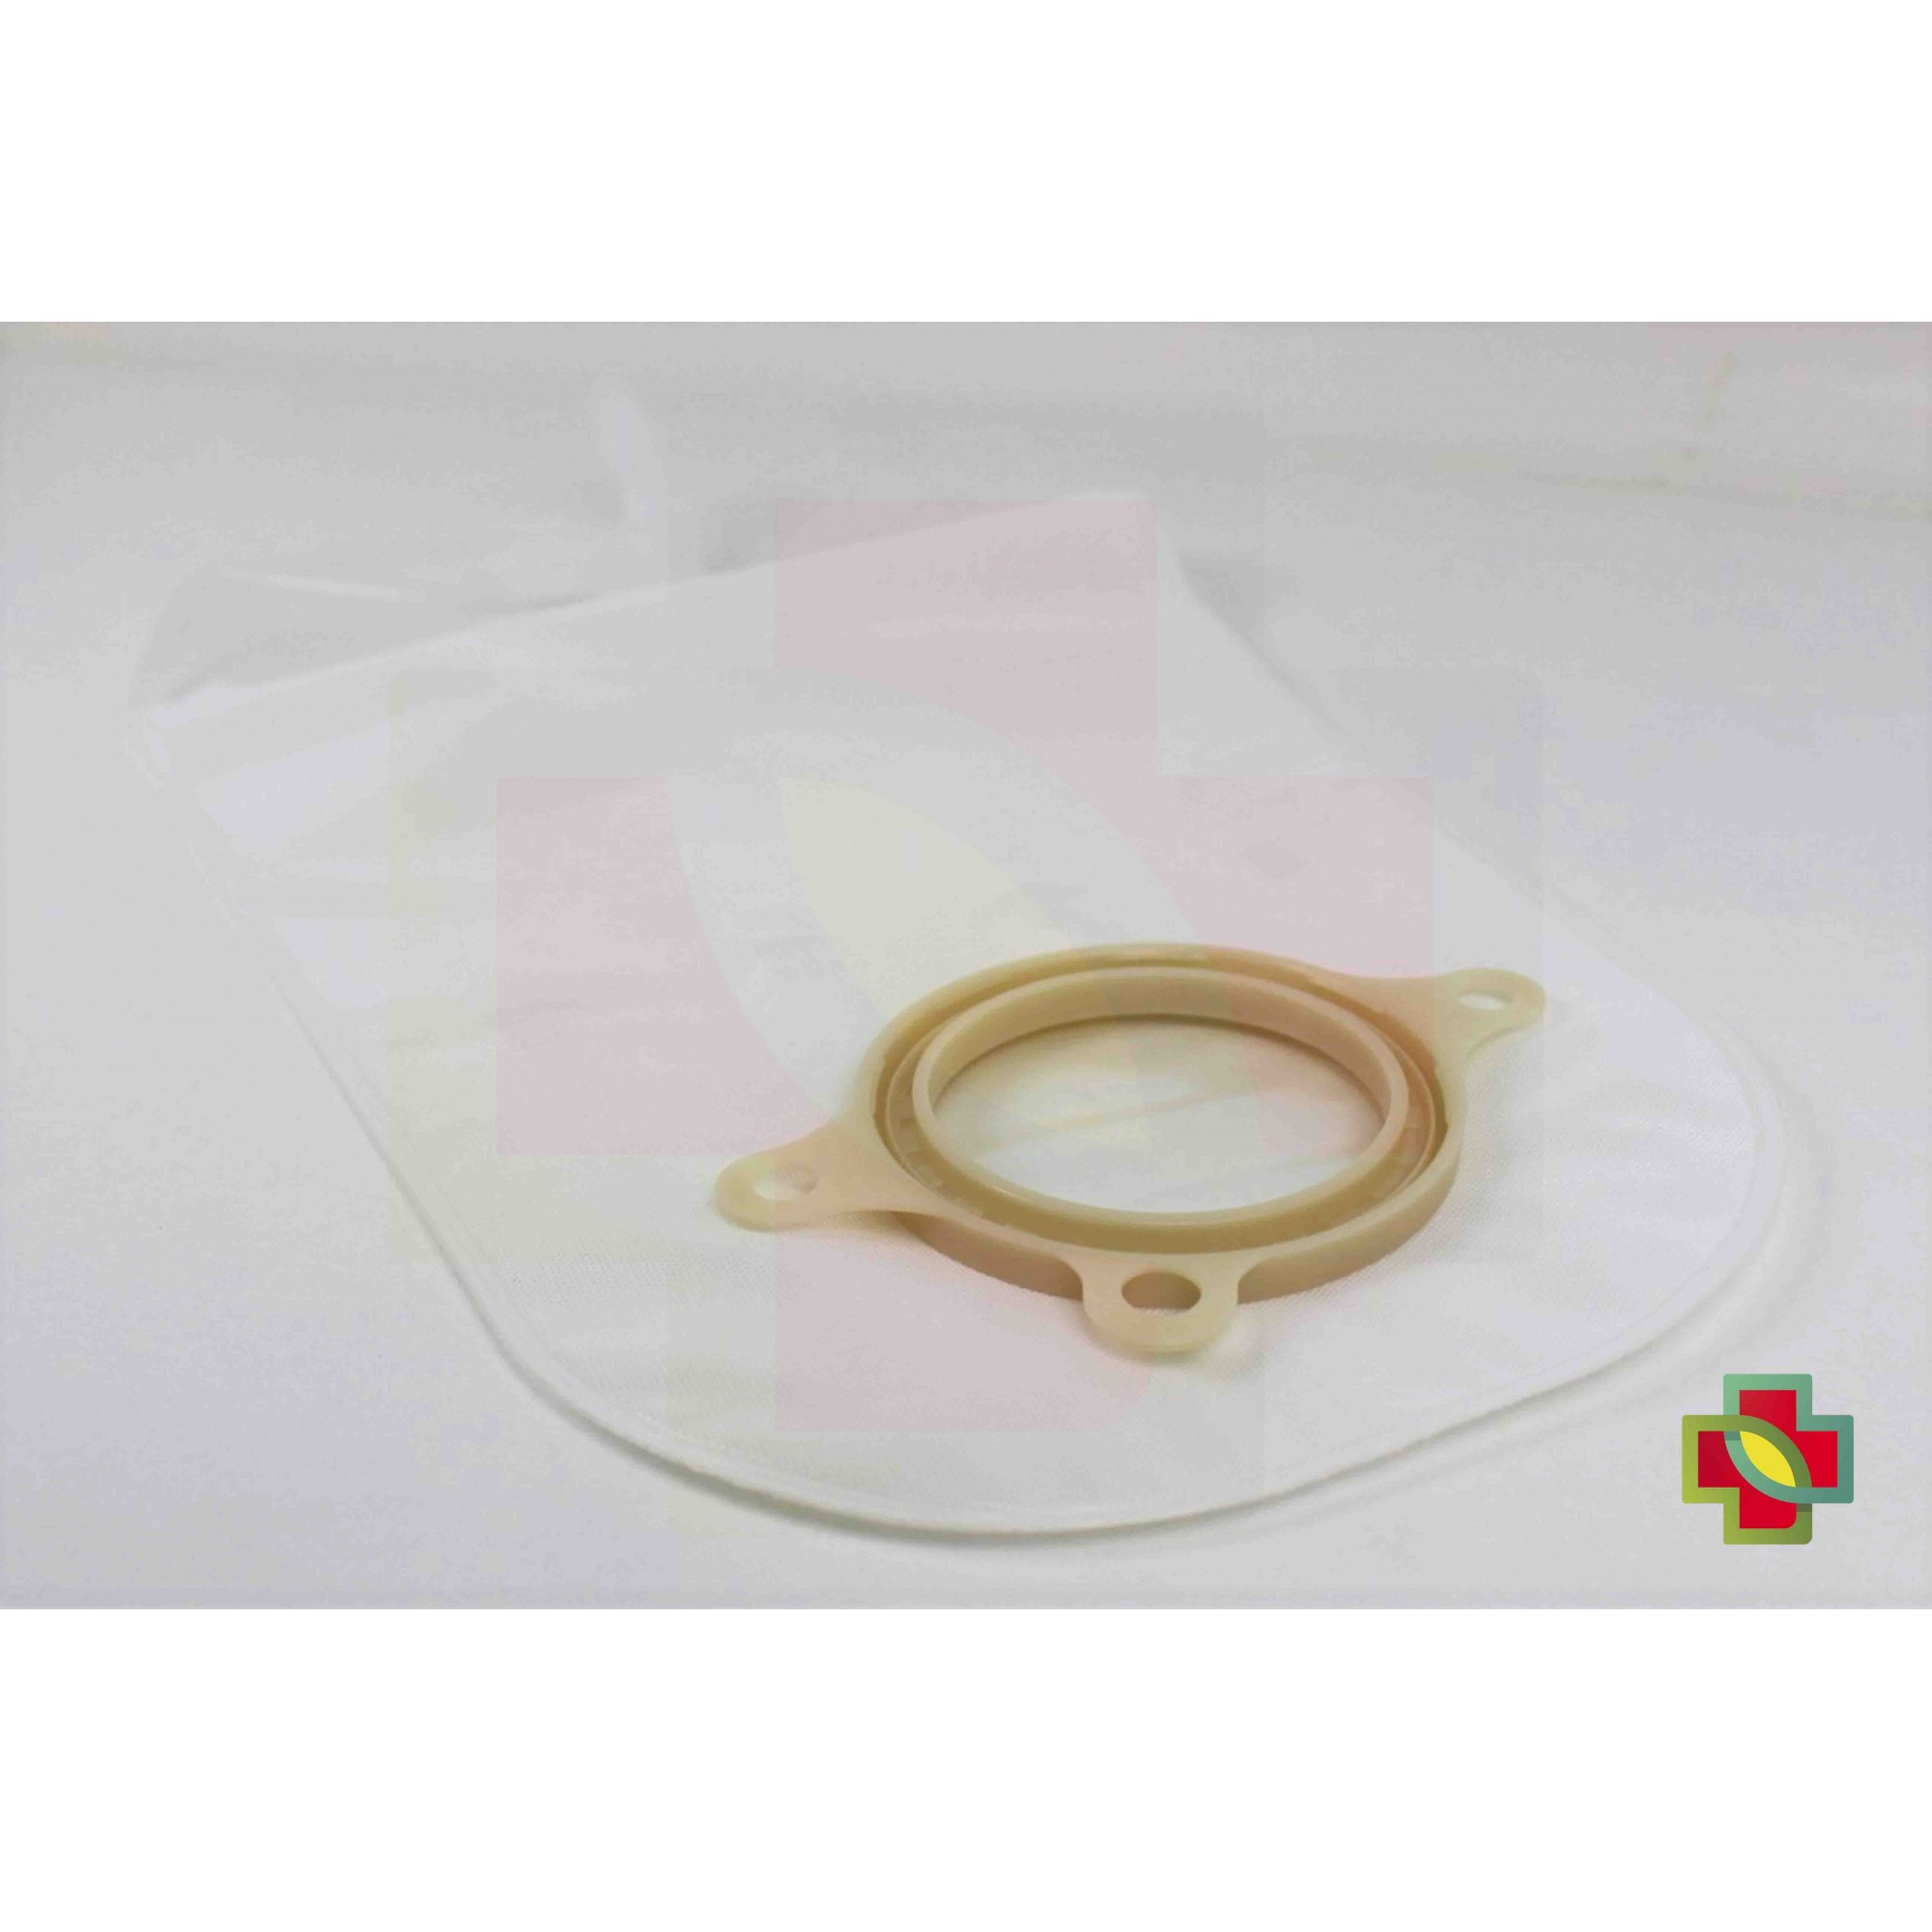 BOLSA DE UROSTOMIA SUR-FIT PLUS TRANSP.ANTI-REFLUXO 45MM (C/10) 402550 - CONVATEC